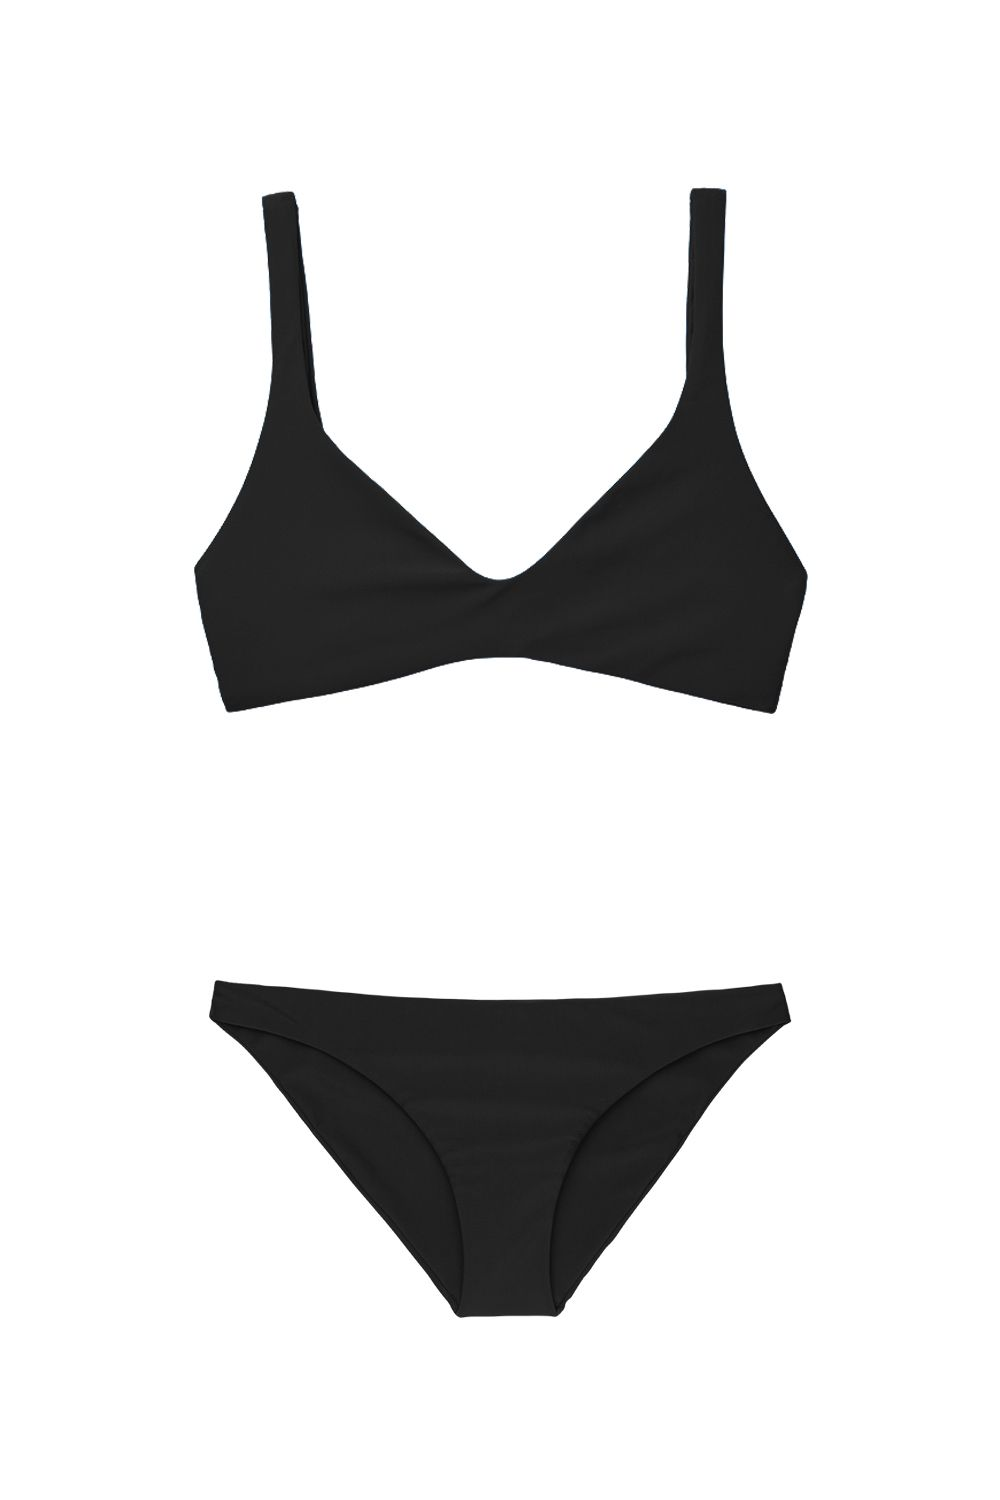 """<p>Skeptical? Don't be—a plunge top with thicker straps works for all kinds of chests, while a low-rise bottom provides medium coverage so you can actually *do* things.</p><p>Top, $50, <a href=""""https://bikyni.com/products/the-plunge"""" target=""""_blank"""" data-tracking-id=""""recirc-text-link"""">bikyni.com</a>; bottoms, $50, <a href=""""https://bikyni.com/products/the-bikini"""" target=""""_blank"""" data-tracking-id=""""recirc-text-link"""">bikyni.com</a>.</p>"""